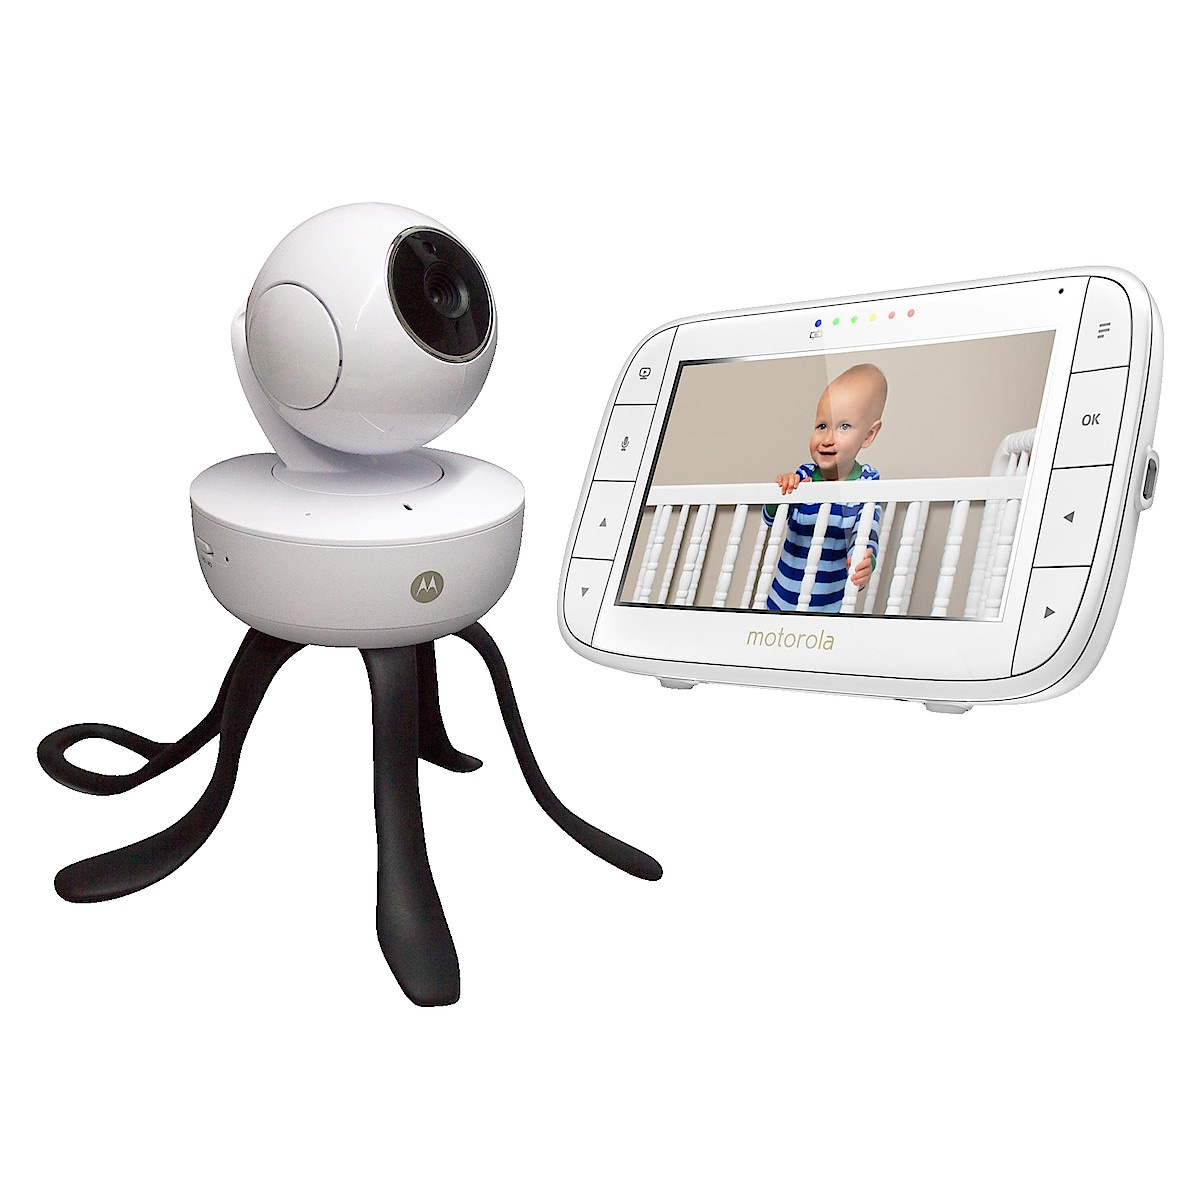 Motorola MBP855 Connect, babycall